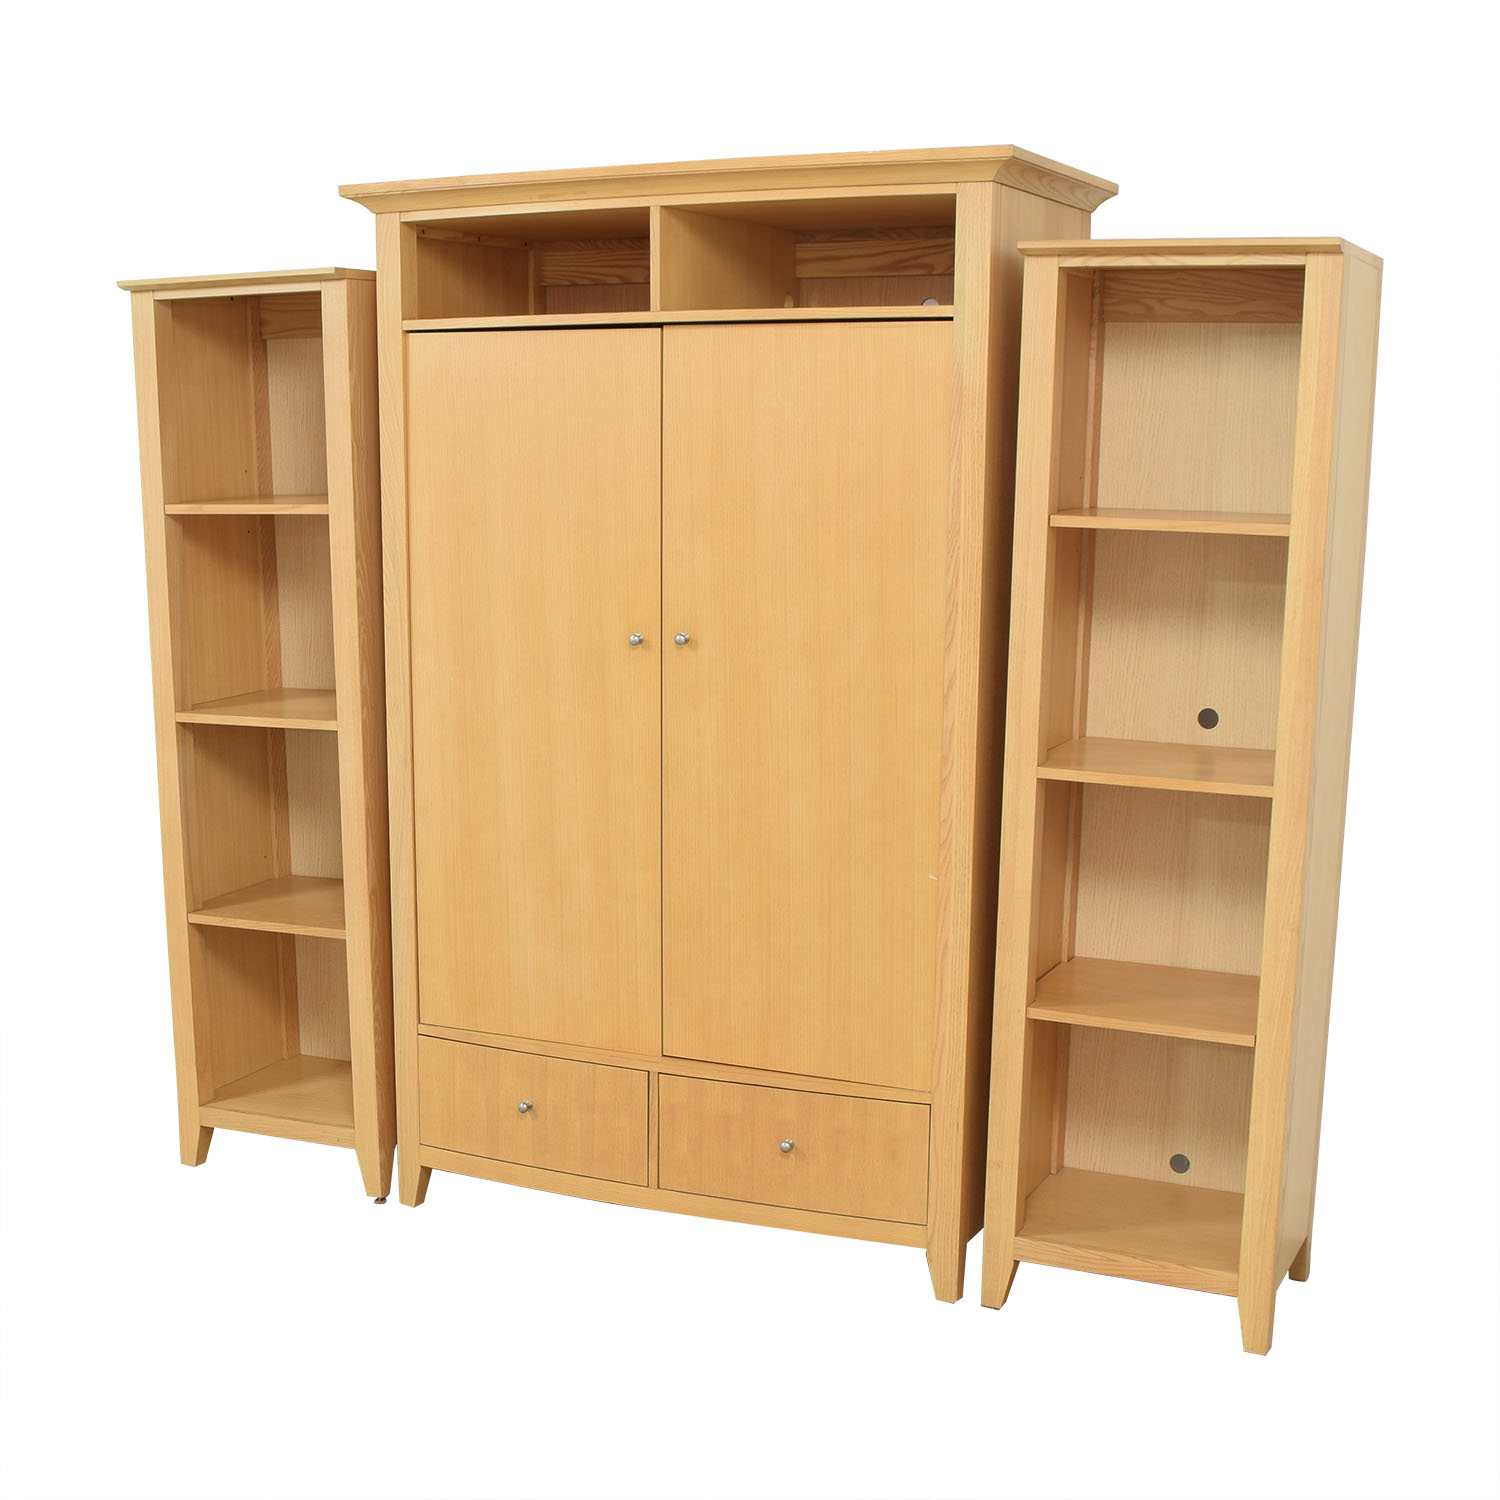 buy Thomasville Thomasville Armoire with Bookshelves online